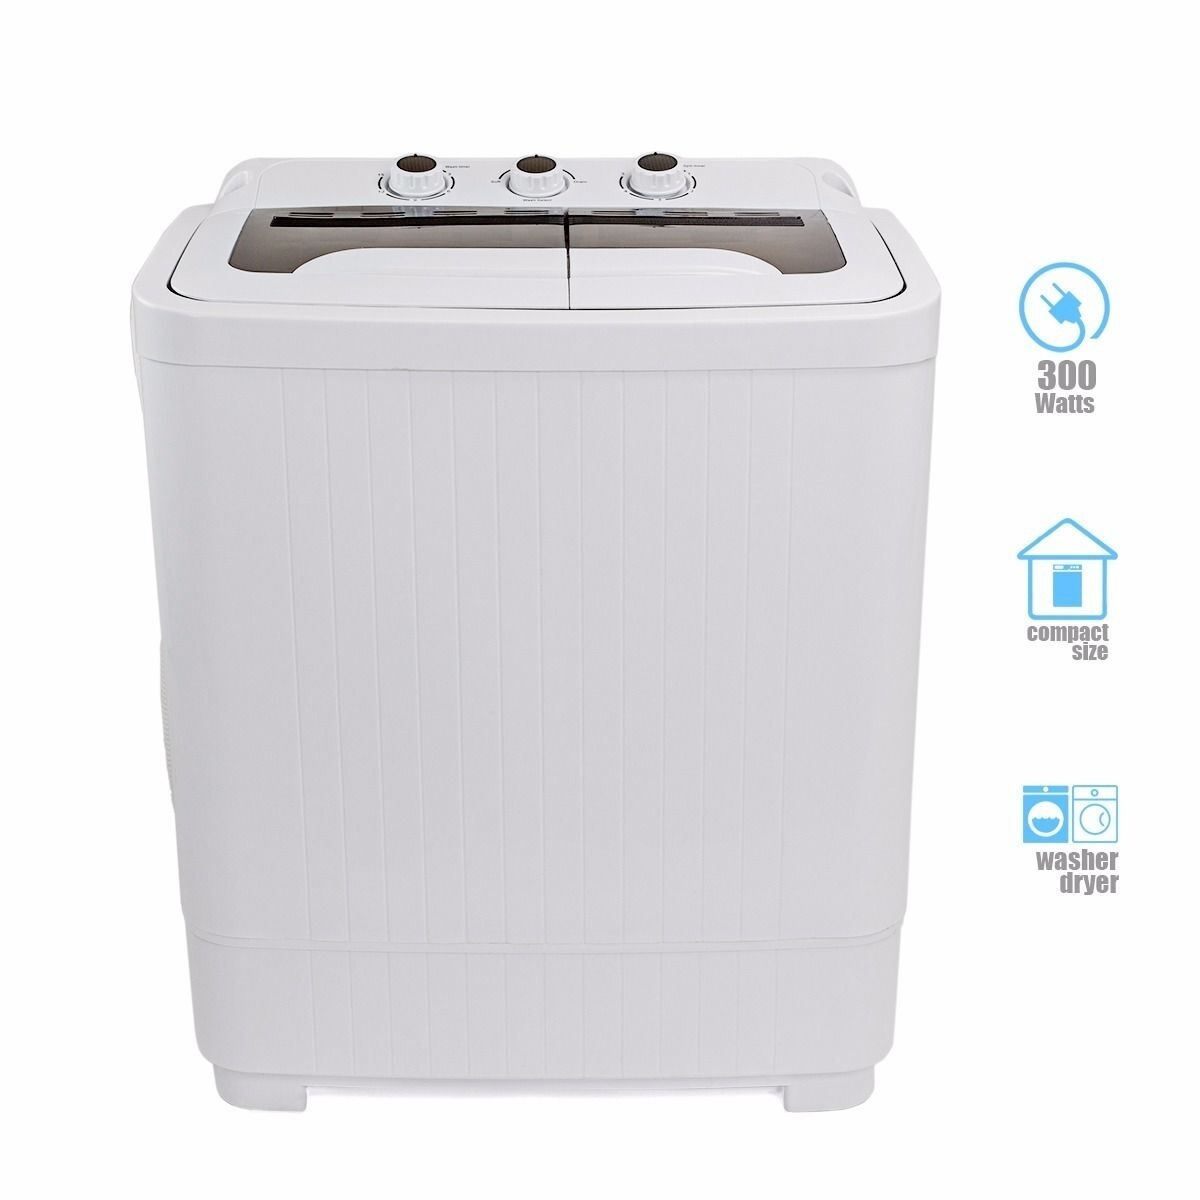 Portable Washer And Dryer Combo For Apartments: Portable MINI Washer Machines Compact 8